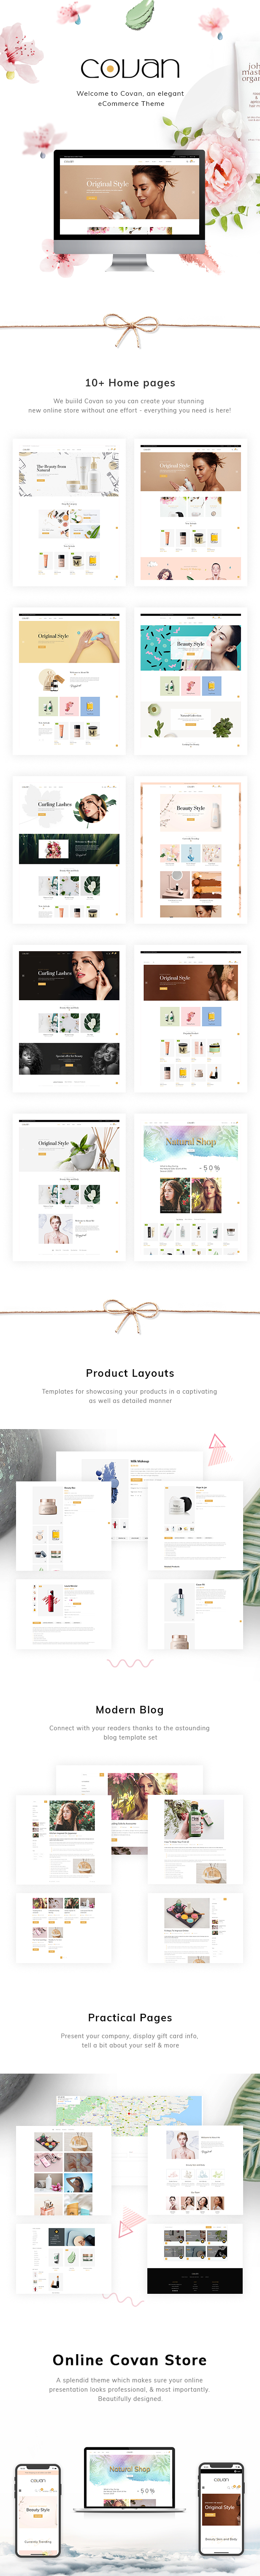 Covan – Cosmetics WooCommerce WordPress Theme - 1